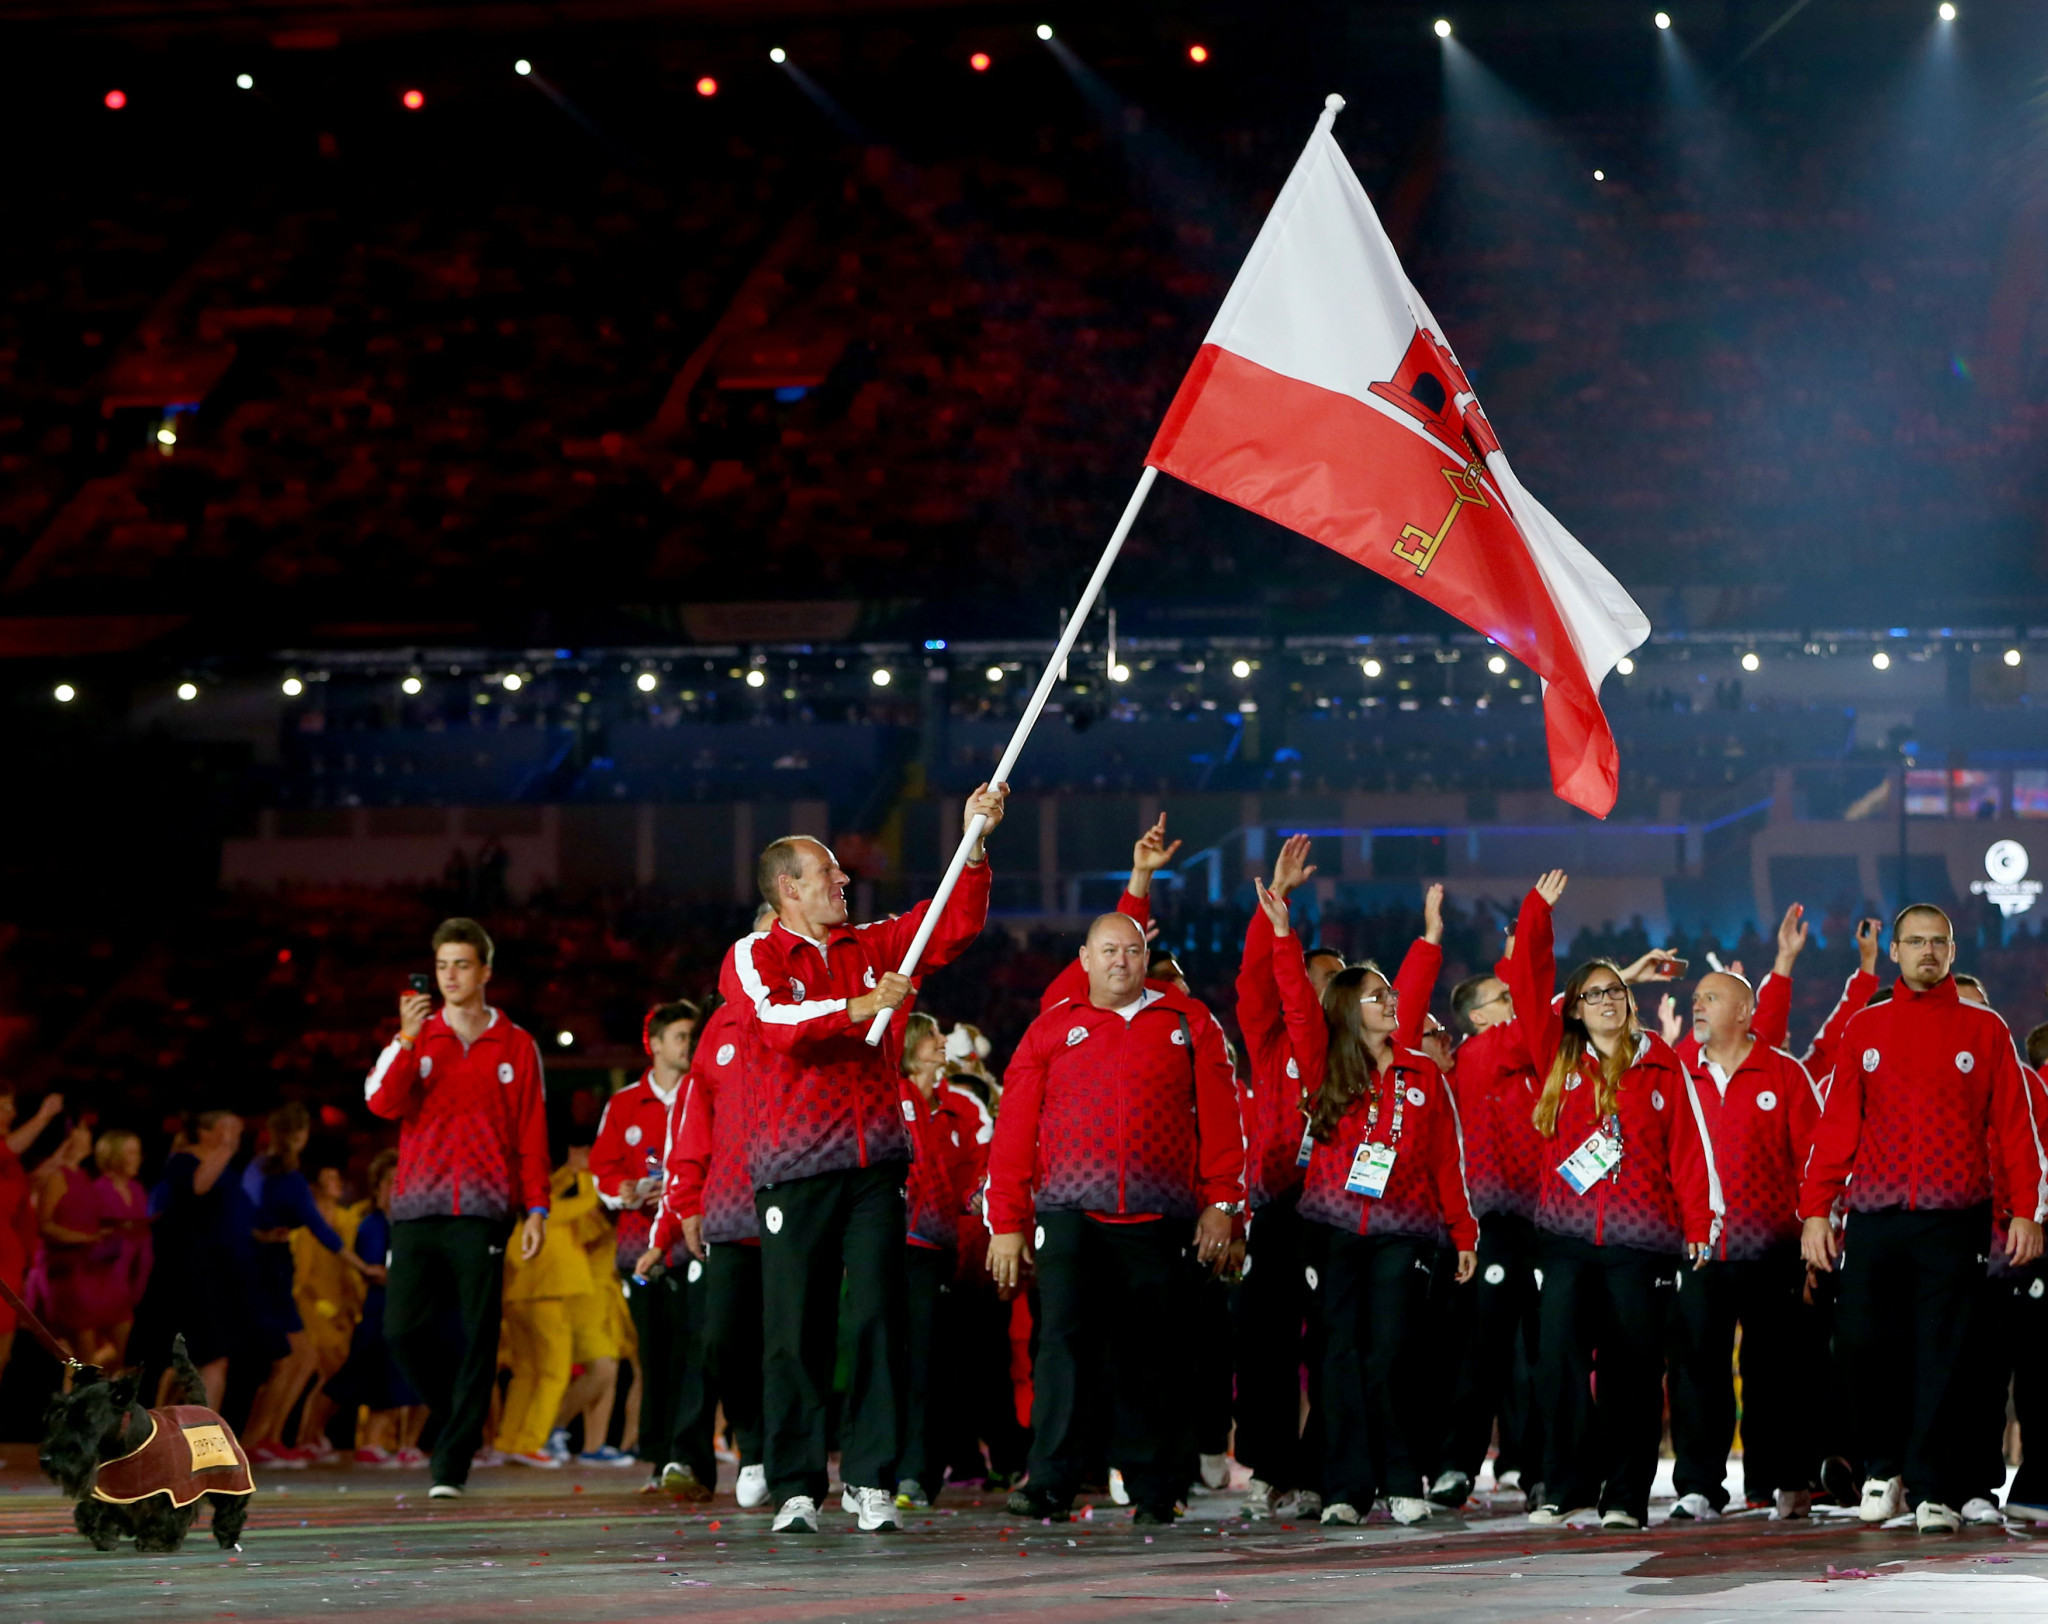 Commonwealth Games Association of Gibraltar accelerates preparations for 2022